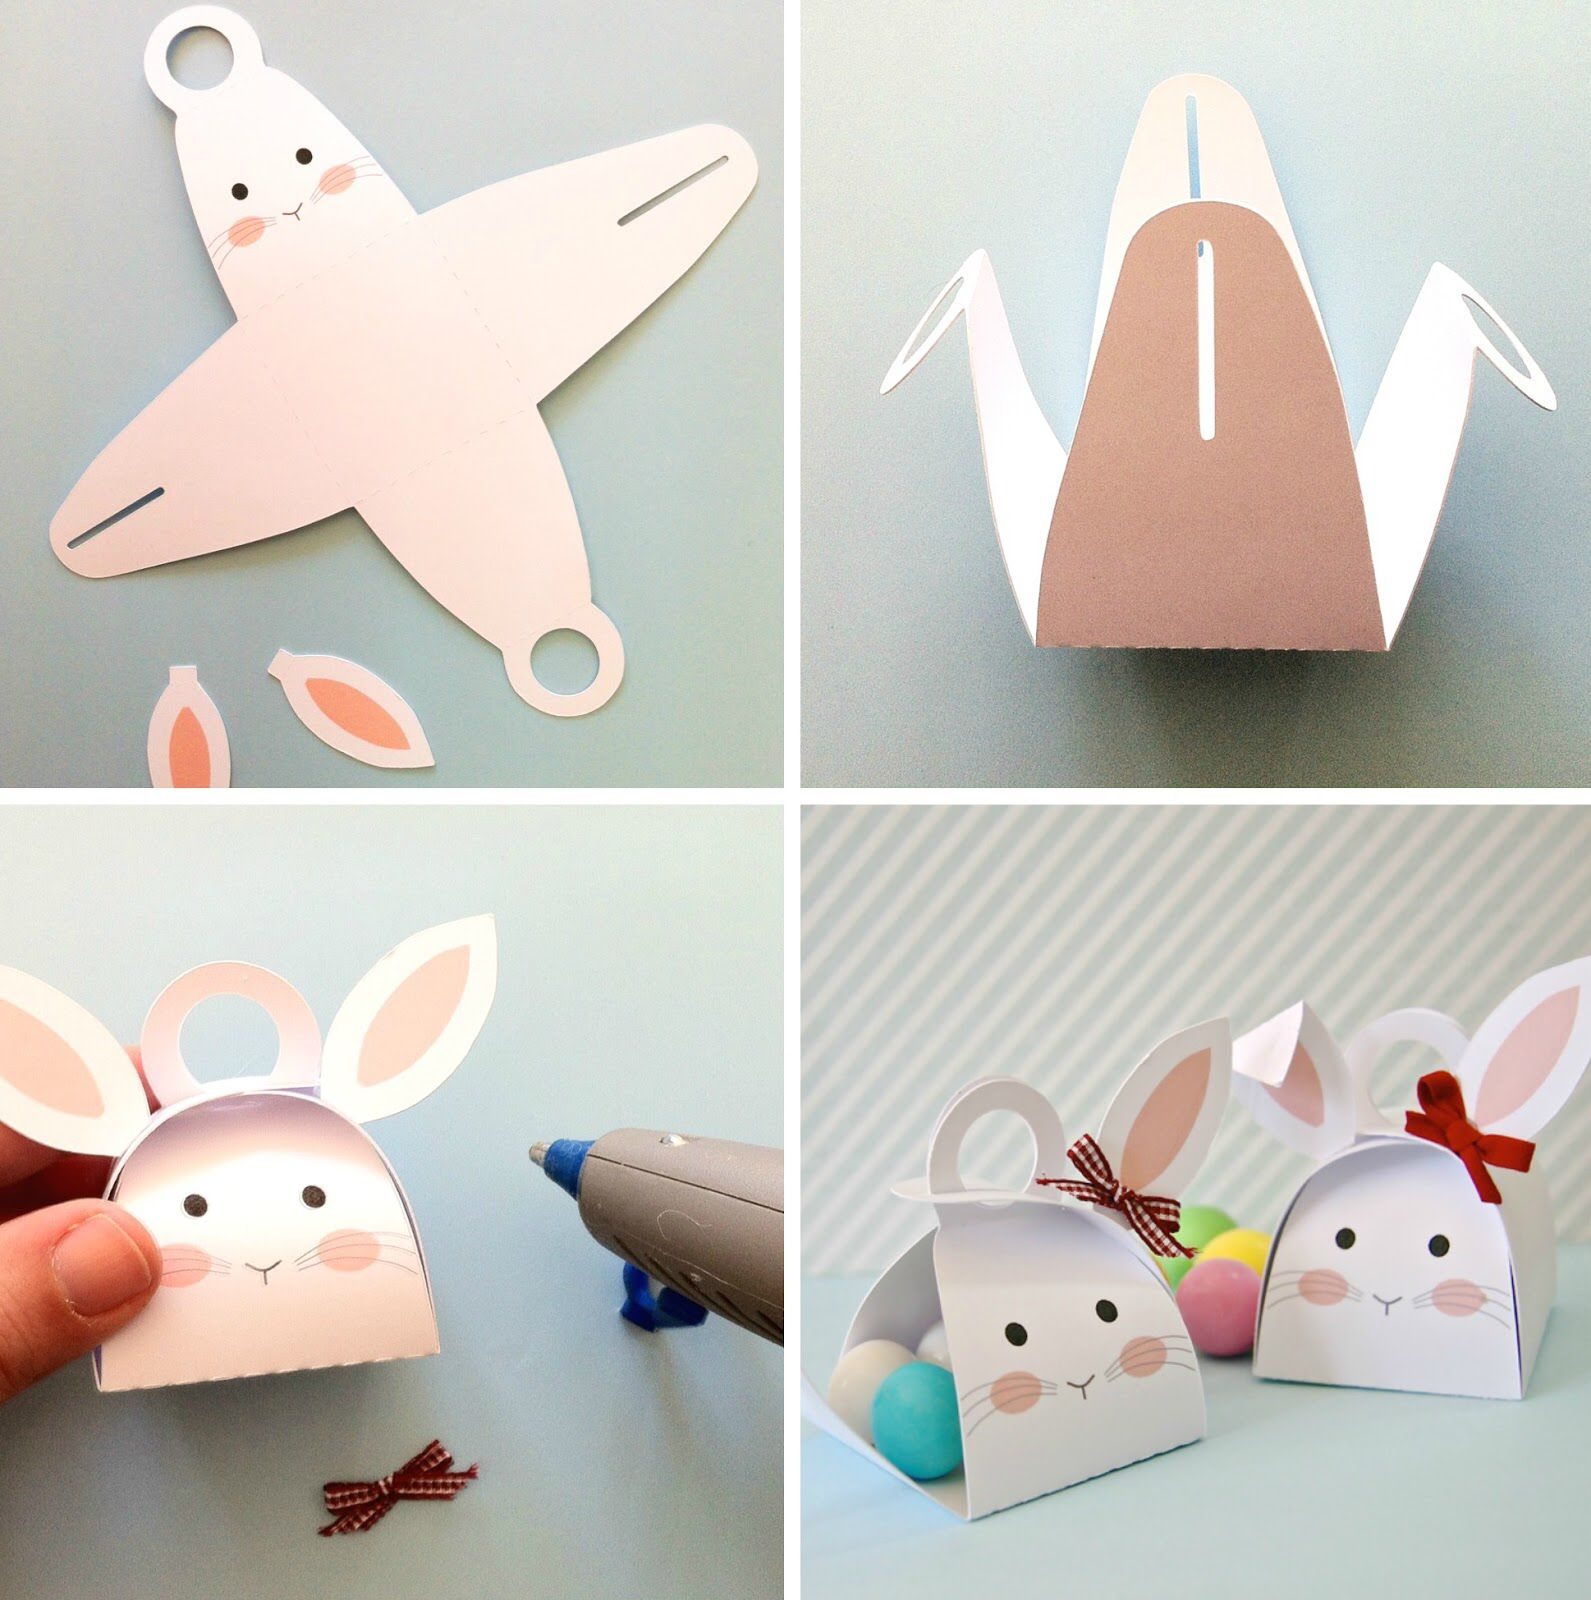 Pin by angelika knoth on basteln pinterest easter keepsakes and tutorials easter cupcakesbunny craftseaster craftsgift box templatesrund negle Images